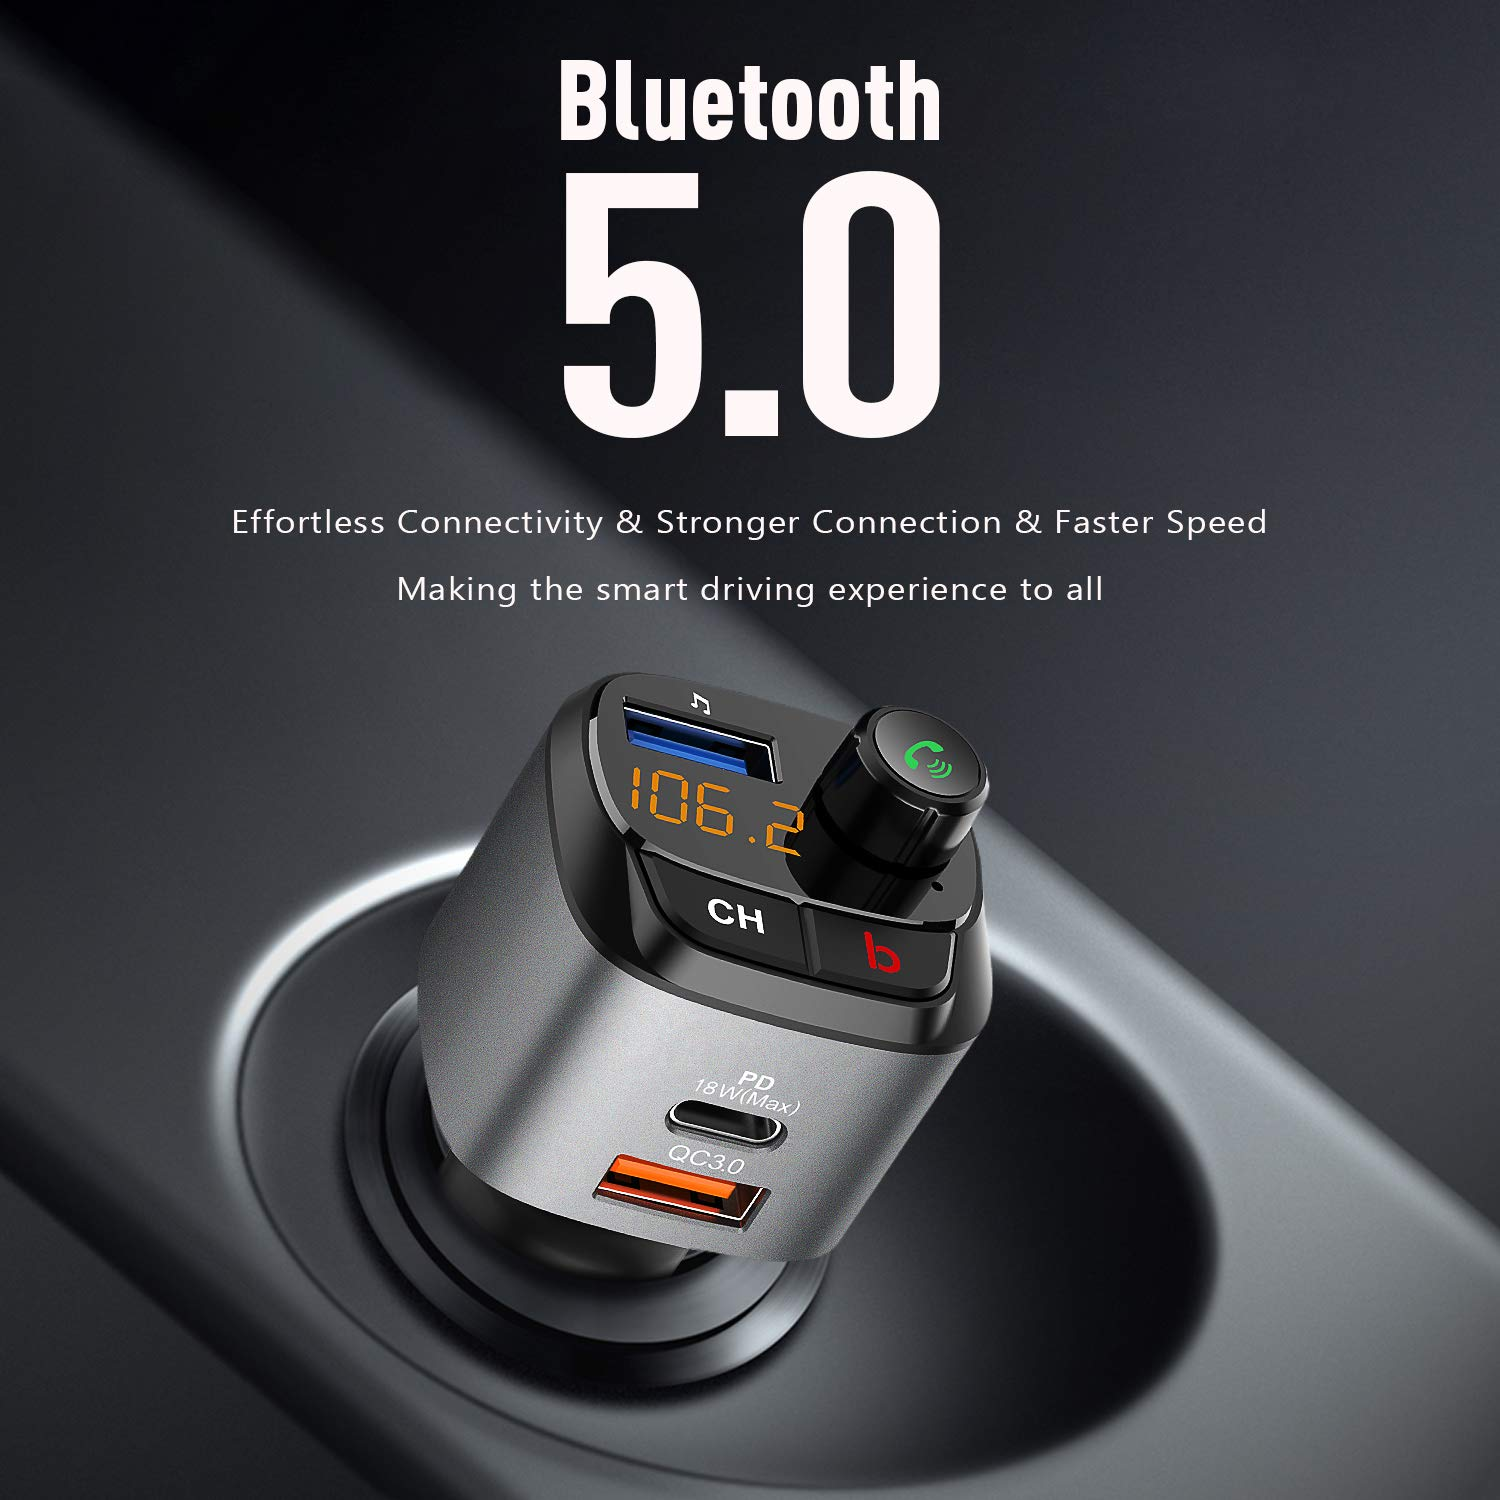 Car Charger with USB-C PD18W /& Quick Charge 3.0 Port Pamyvia Wireless Audio Adapter V5.0 Bluetooth FM Transmitter for Car 3 USB Ports U Disk Upgraded Hands-Free Calling Bass Booster